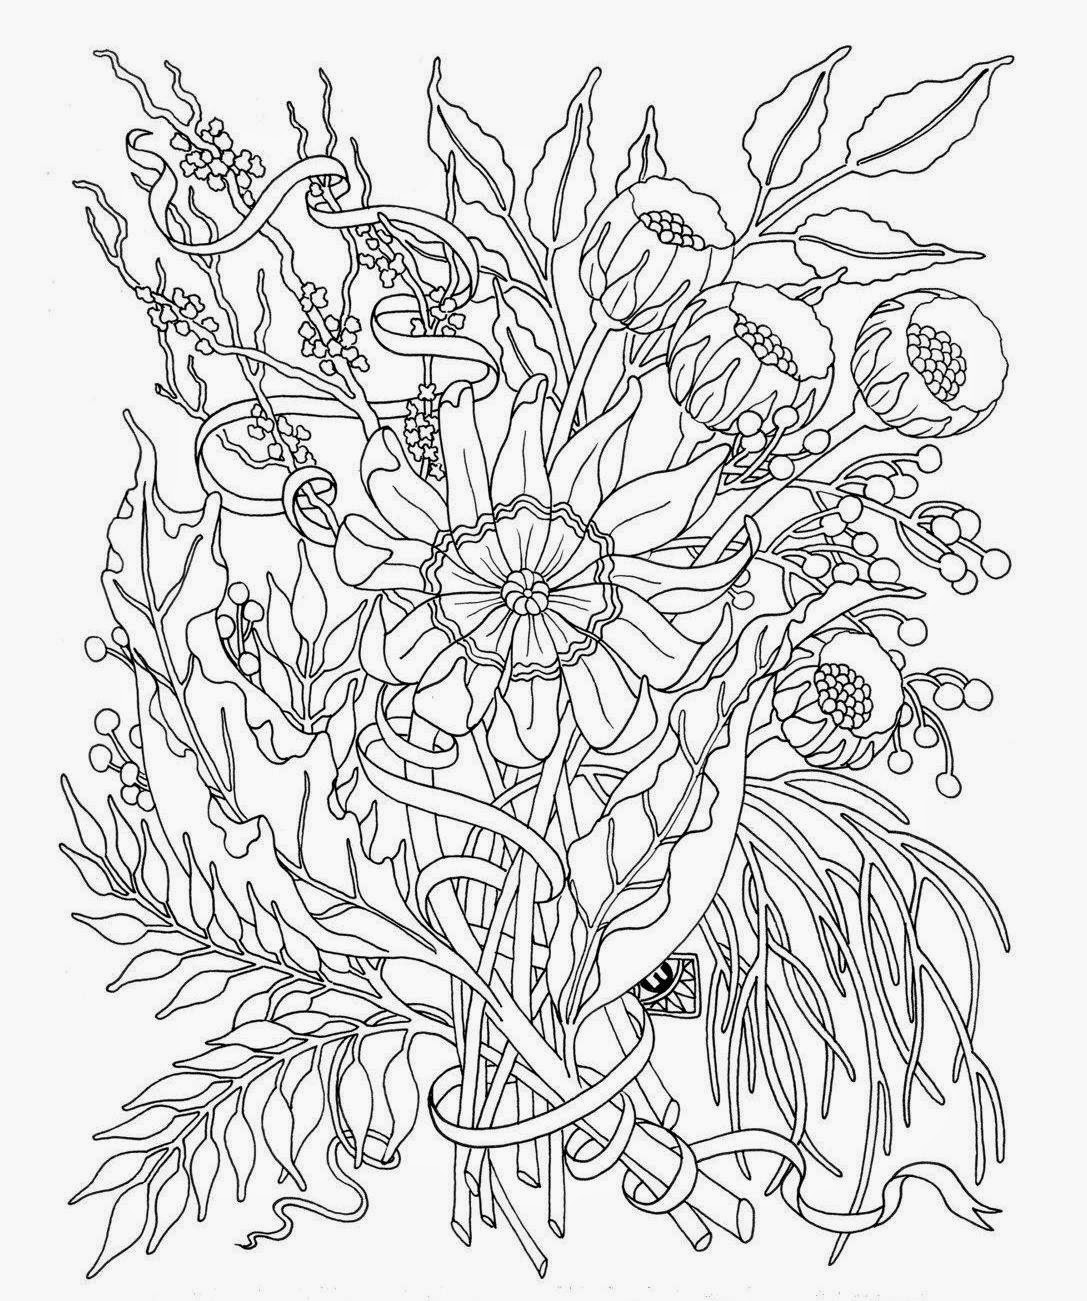 coloring pages for tweens coloring town tweens coloring pages for